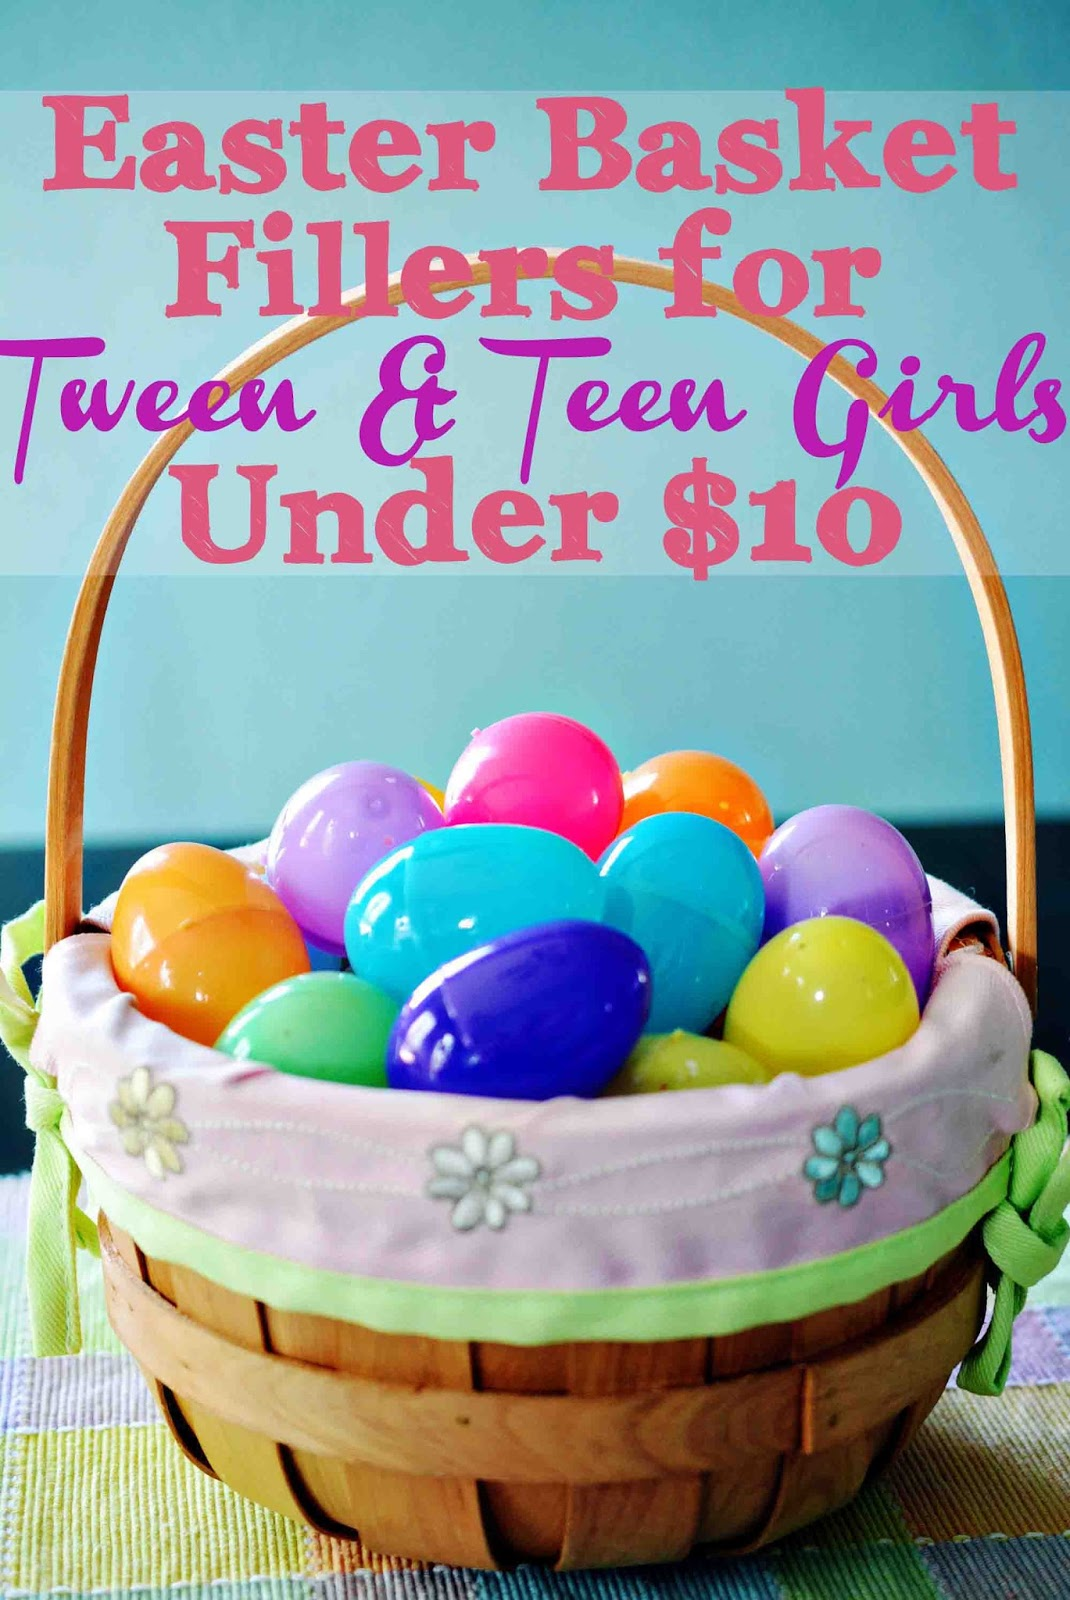 Theresas mixed nuts tween teen girl easter basket filler ideas tween teen girl easter basket filler ideas under 10 negle Images